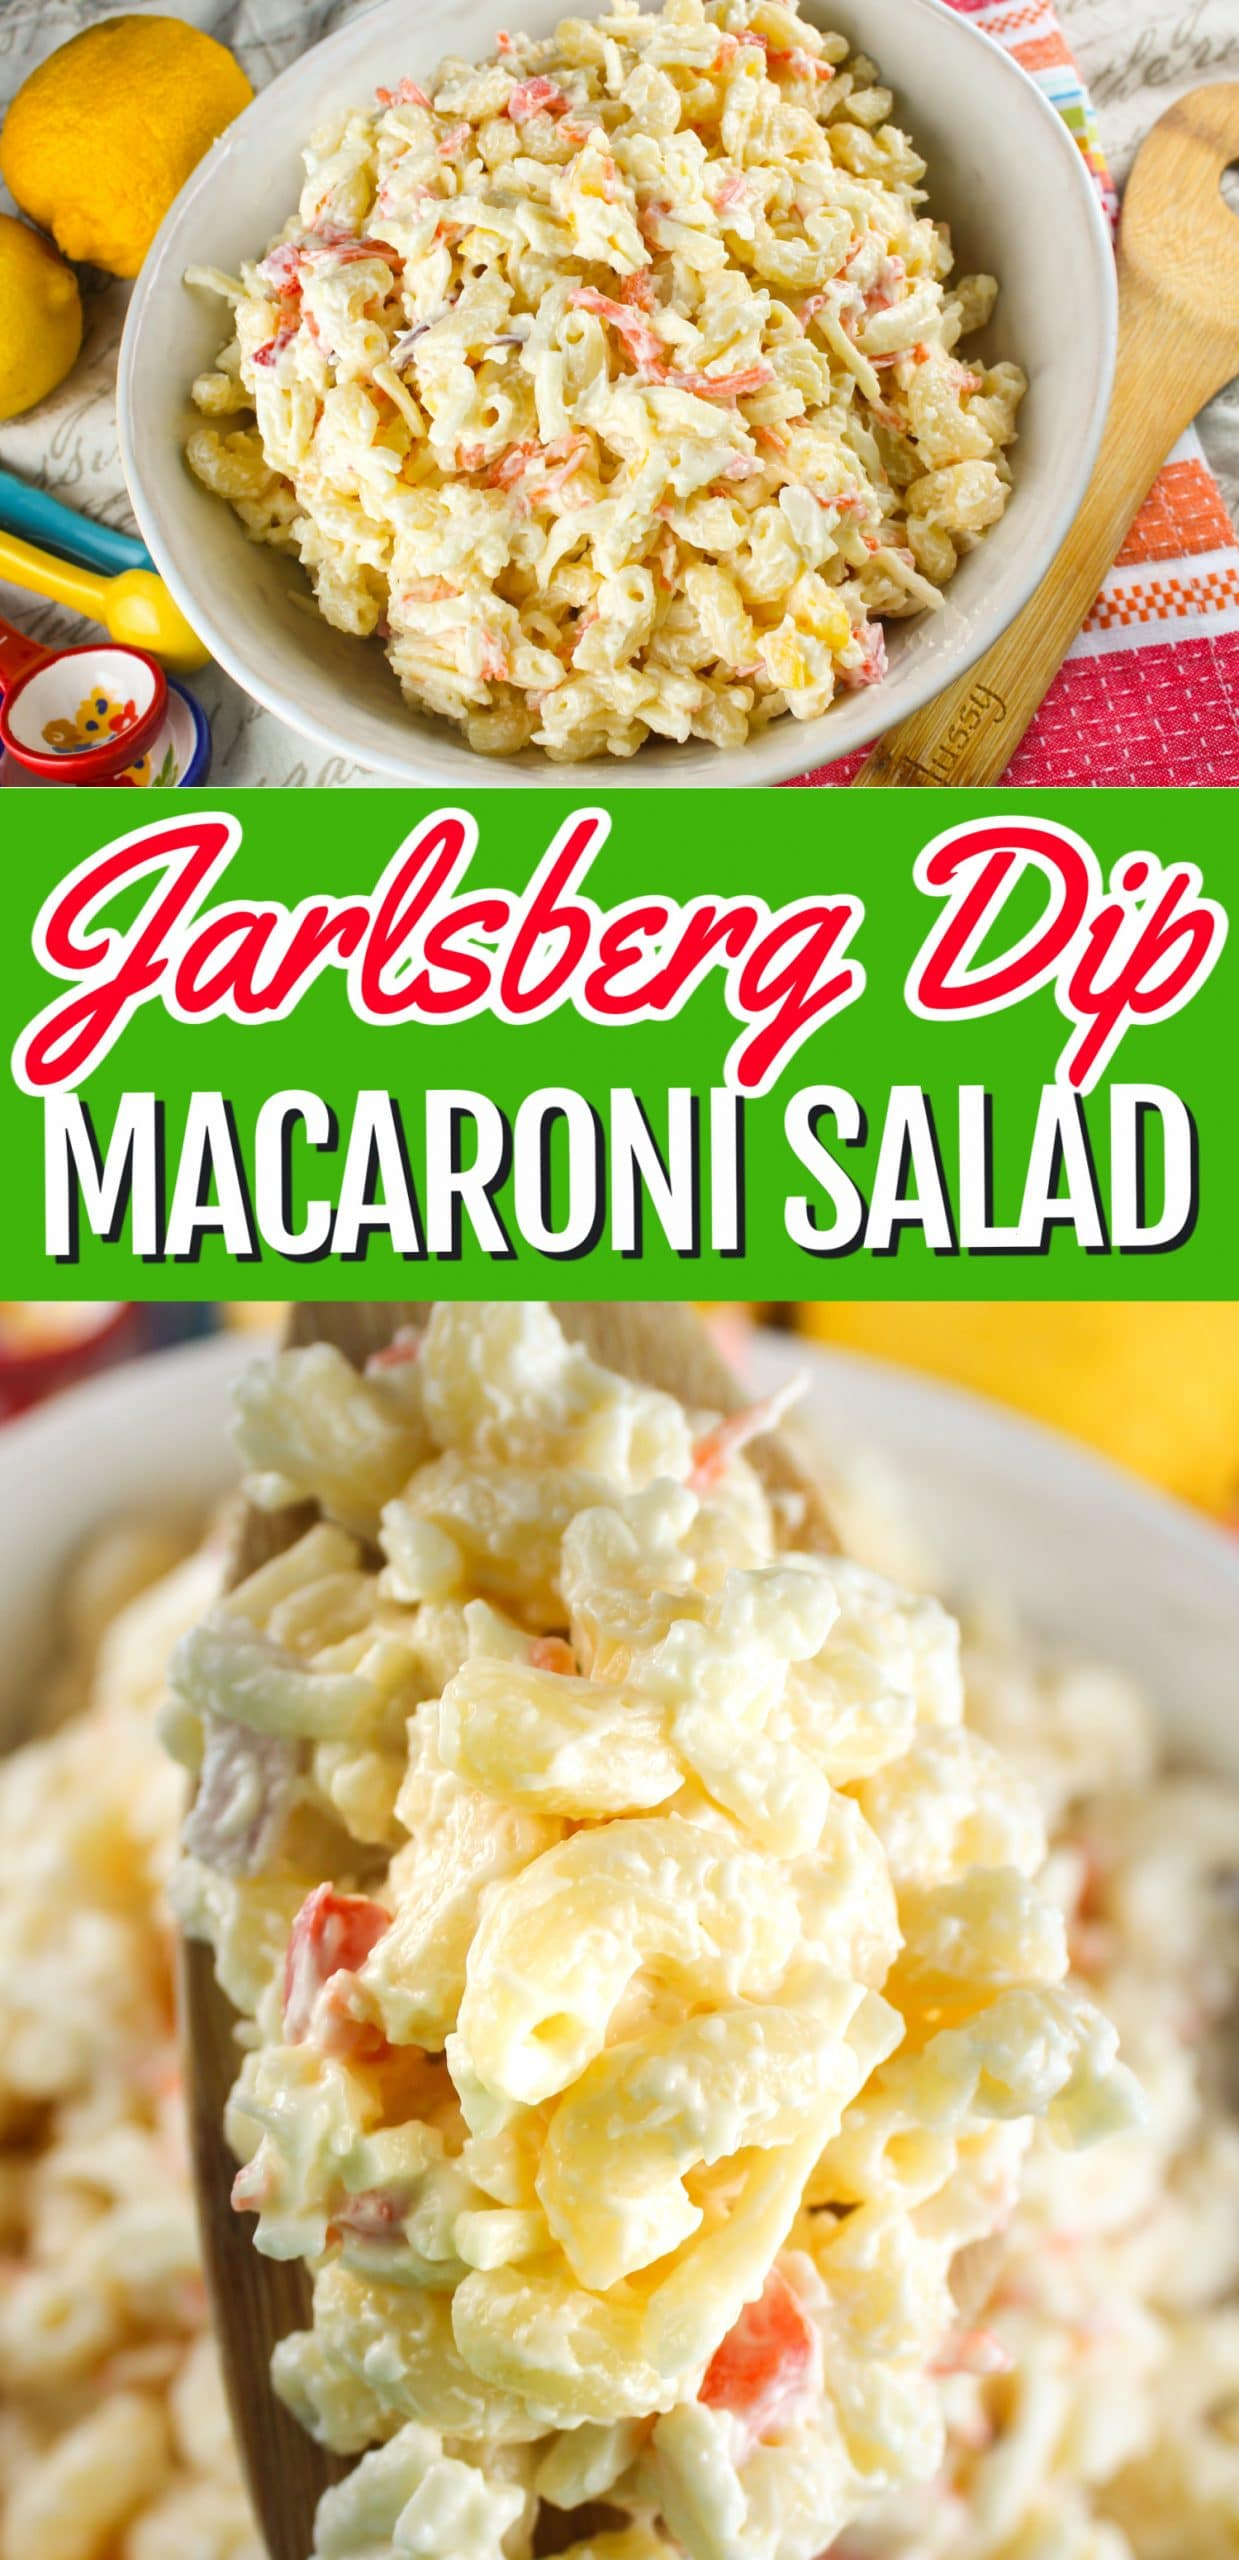 With the holidays fast approaching, quick and easy side dishes are always needed! This Jarlsberg Dip Macaroni Salad is going to be a sure fire hit at your dinner table! Plus it's SO SIMPLE to make! via @foodhussy